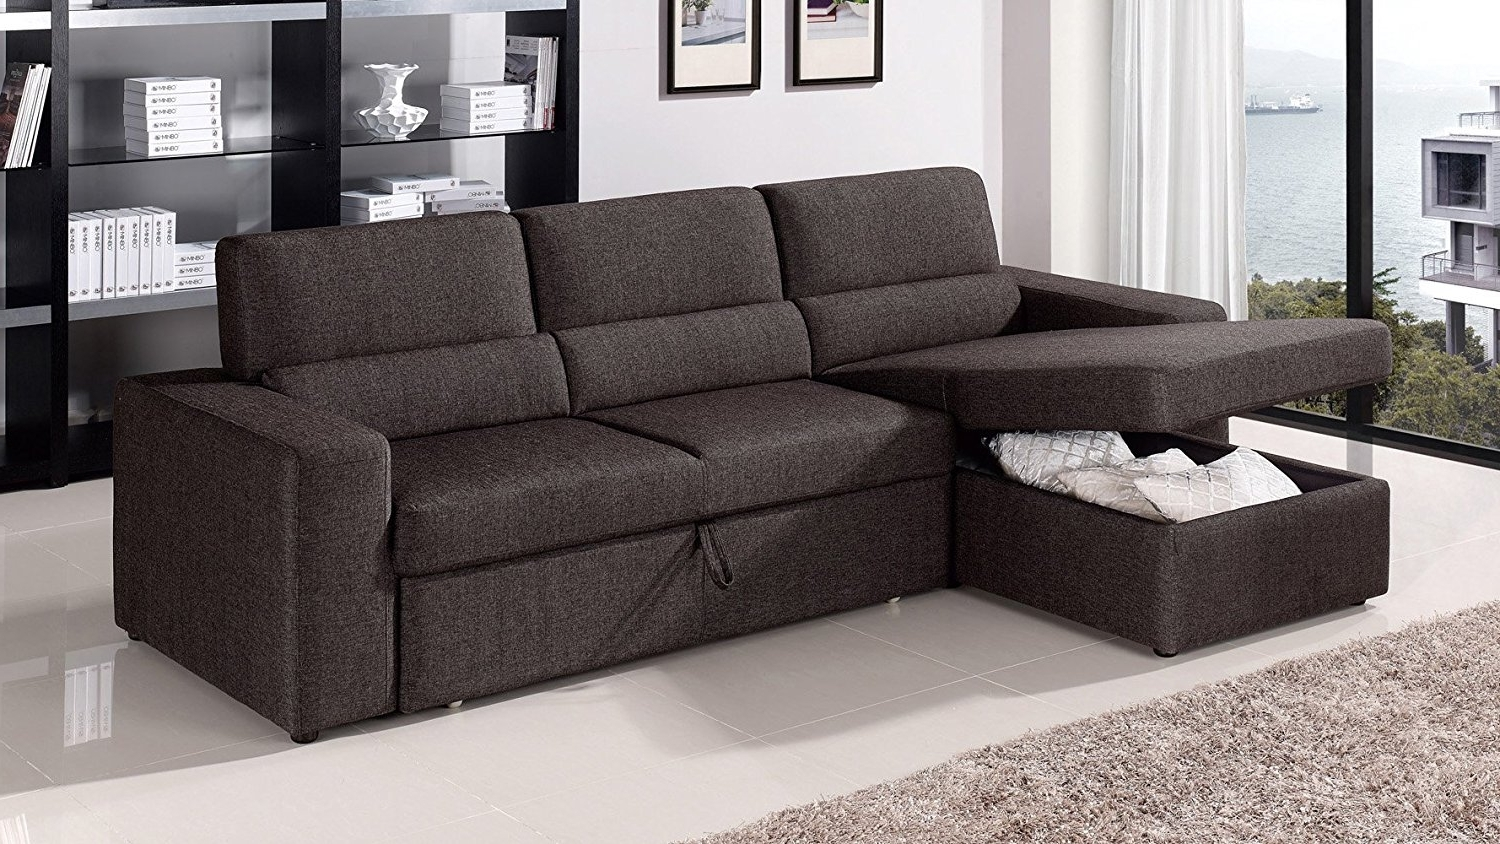 Sofa Bed Chaises Throughout Recent Amazon: Black/brown Clubber Sleeper Sectional Sofa – Left (View 12 of 15)